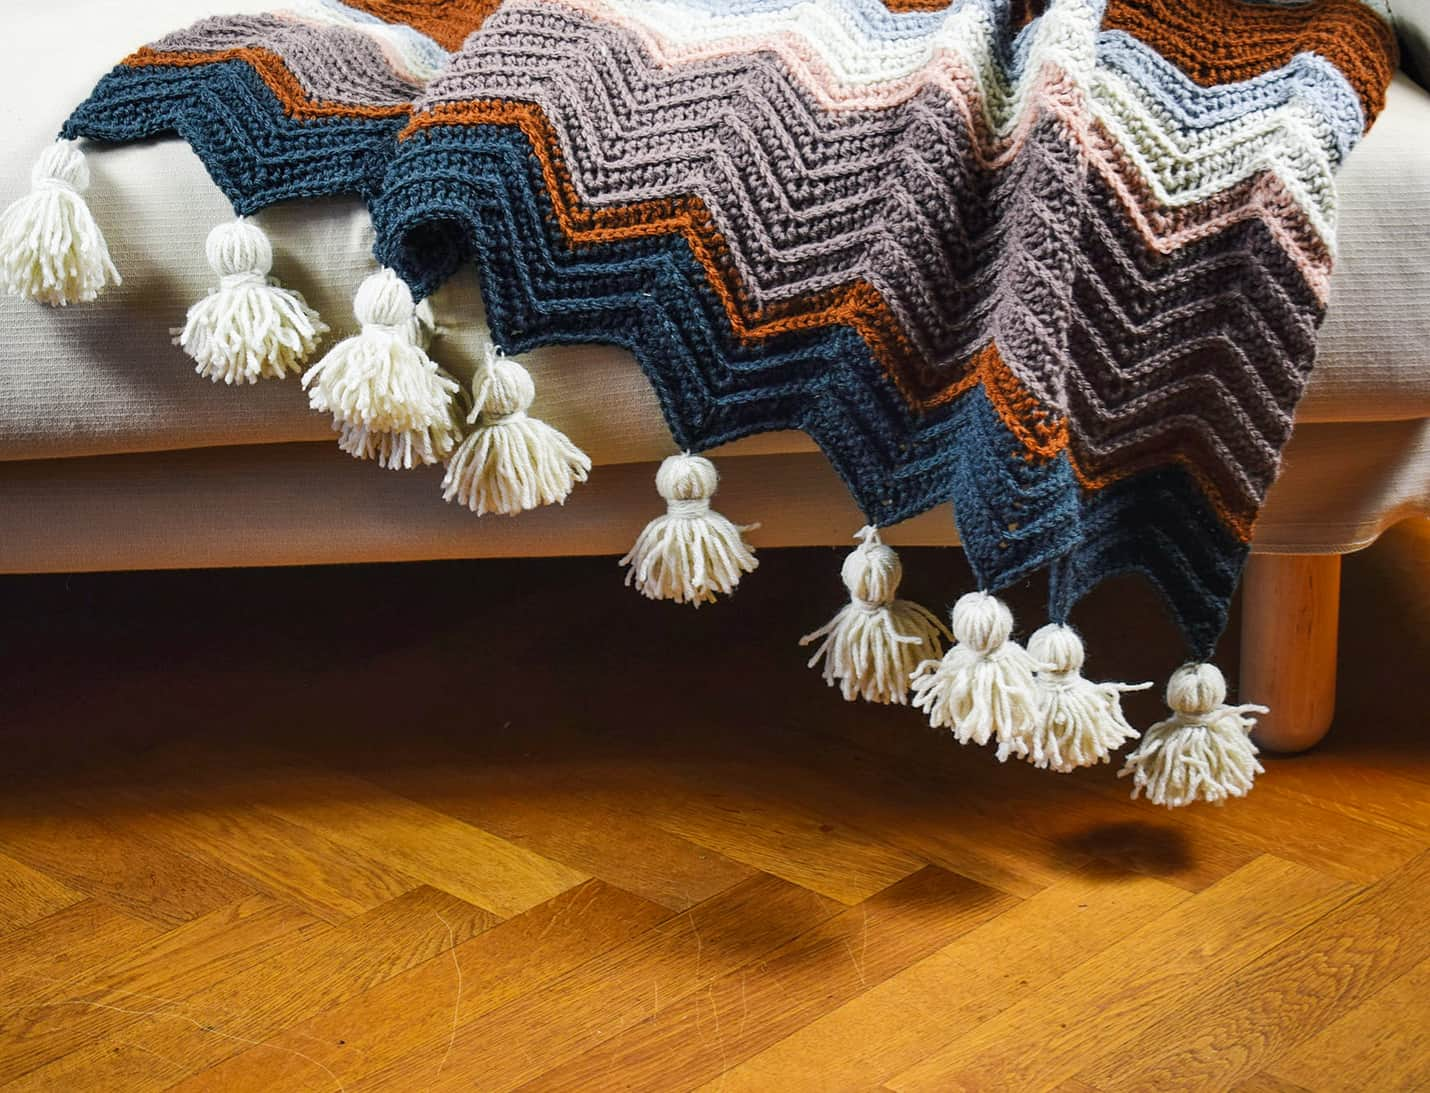 crochet blanket with tassels